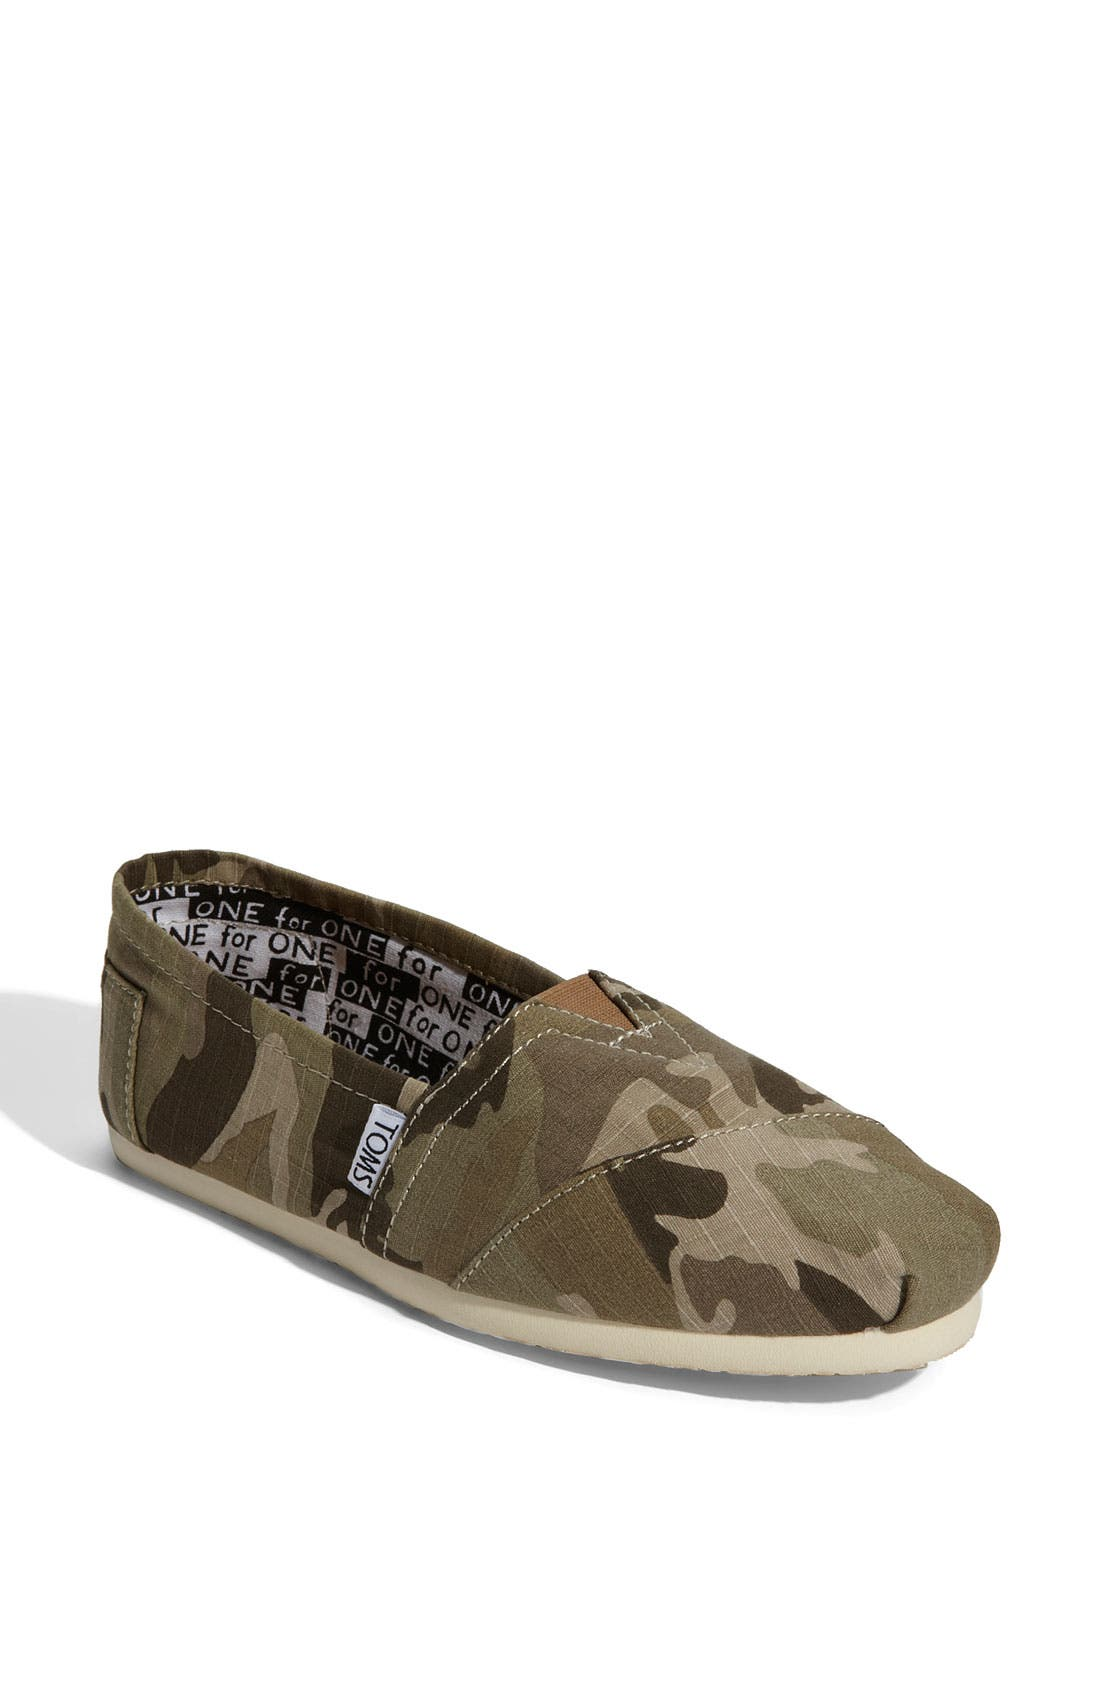 Main Image - TOMS 'Classic - Camo' Slip-On (Women) (Nordstrom Exclusive)